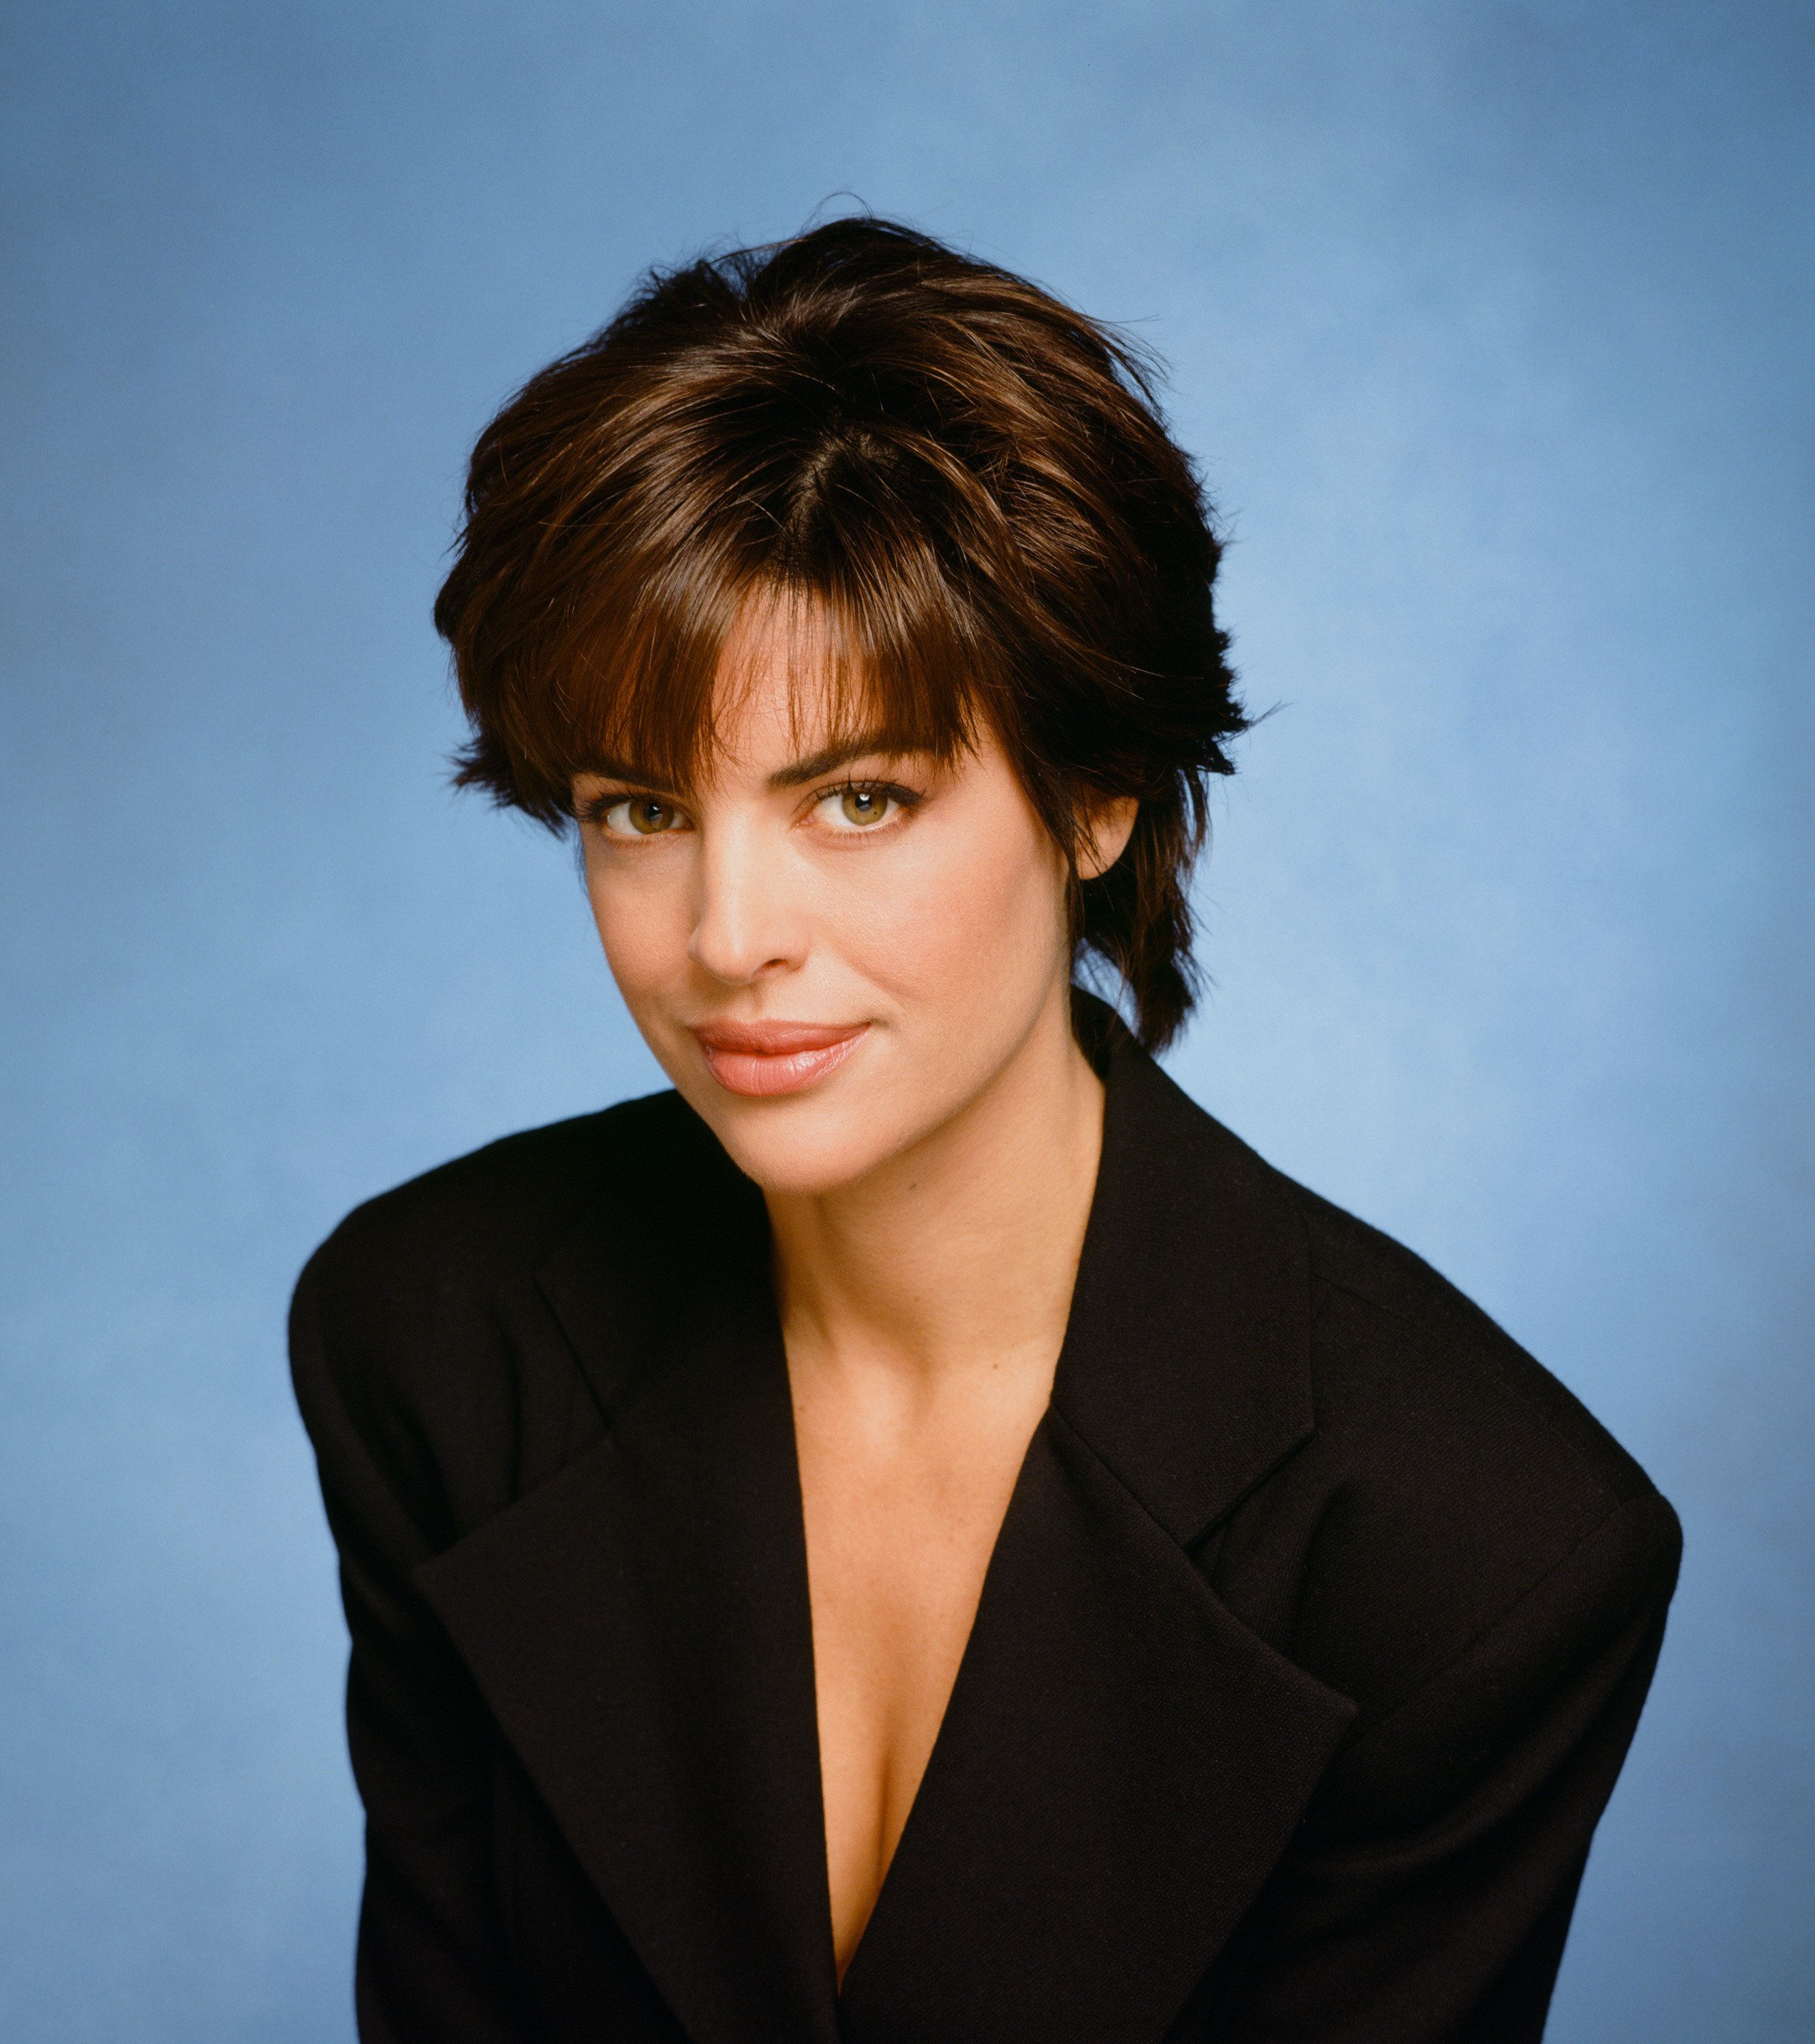 Images Lisa Rinna nude (52 foto and video), Pussy, Paparazzi, Feet, underwear 2020